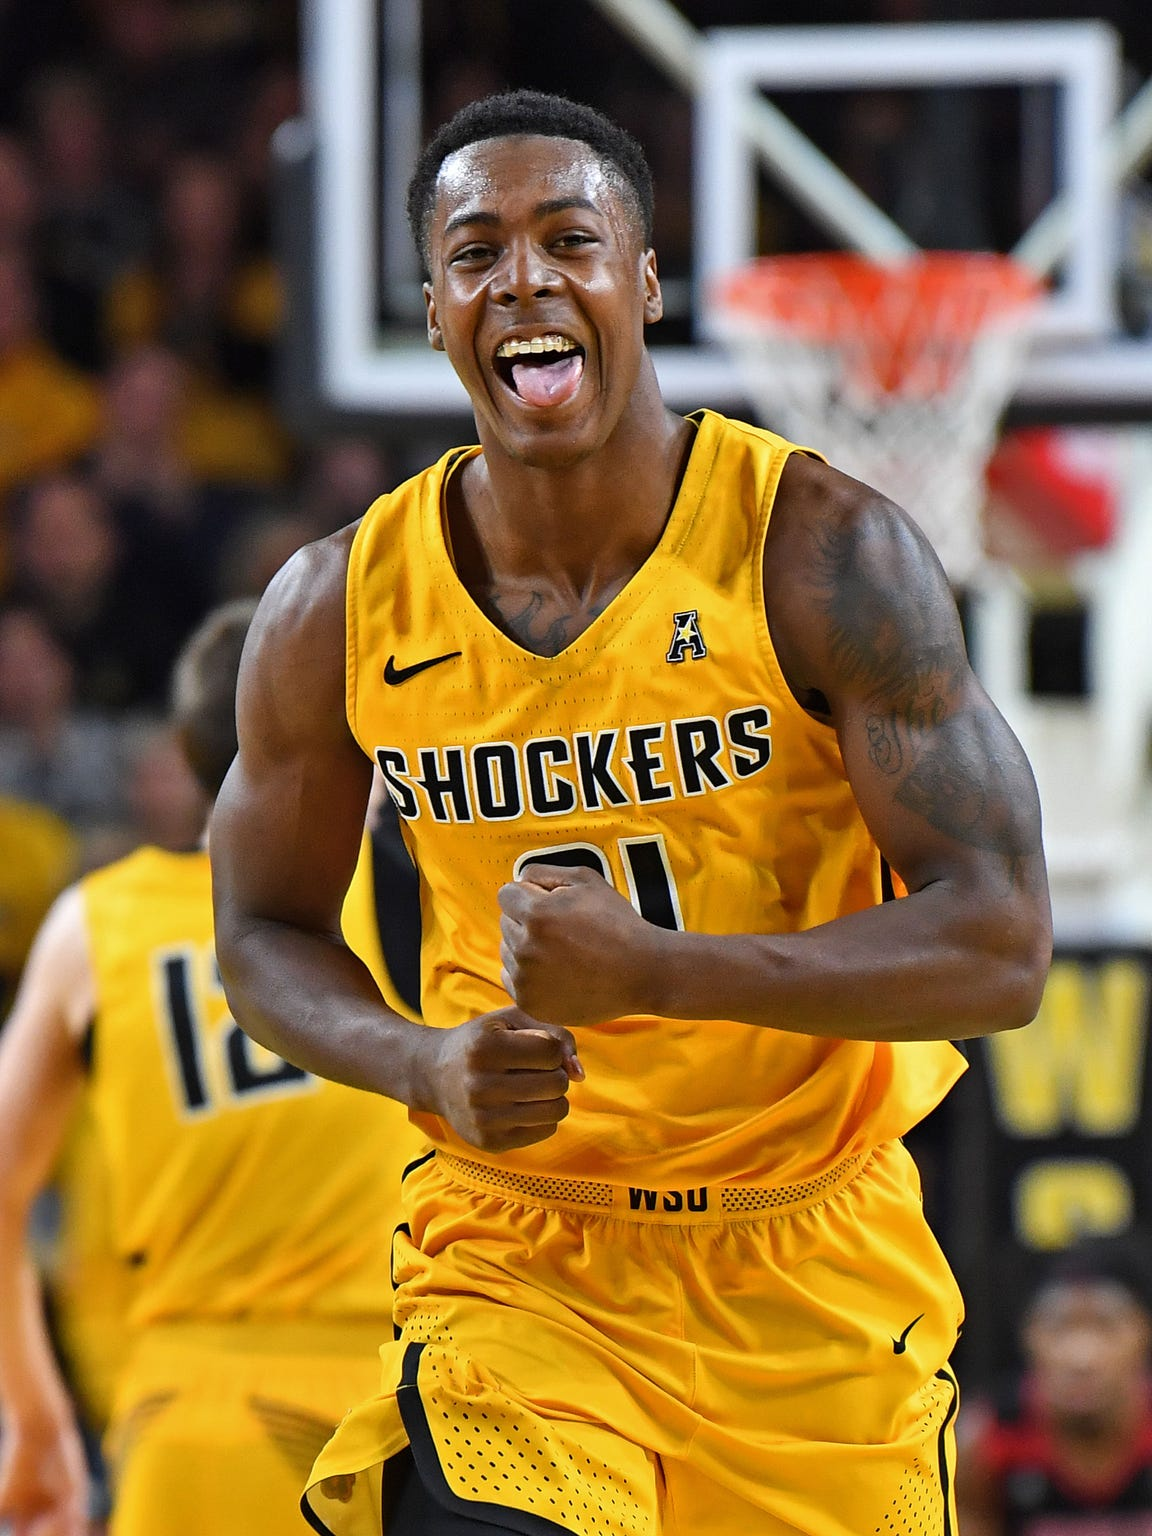 Dec. 19: Wichita State Shockers forward Darral Willis Jr. (21) reacts after a dunk against the Arkansas State Red Wolves during the second half at Charles Koch Arena.